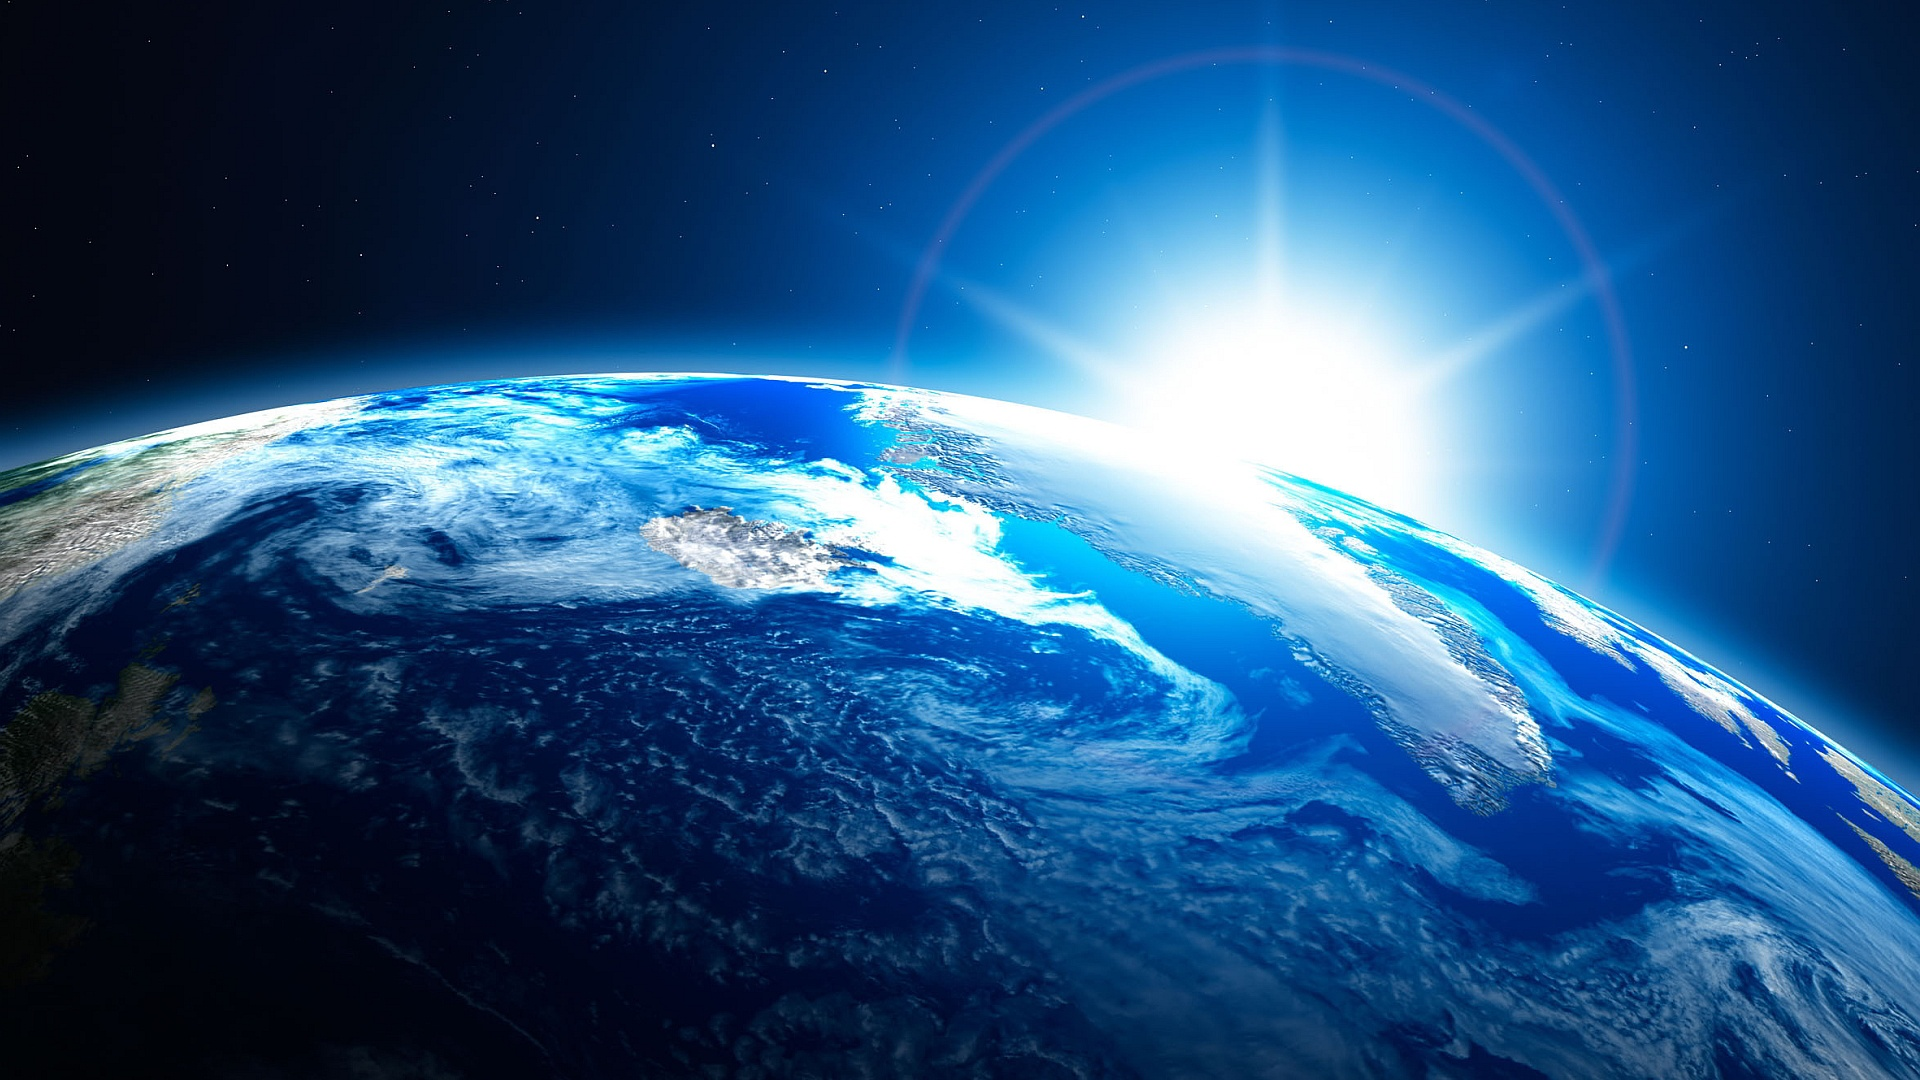 Free Download High Resolution Awesome Planet Earth Wallpaper Hd 14